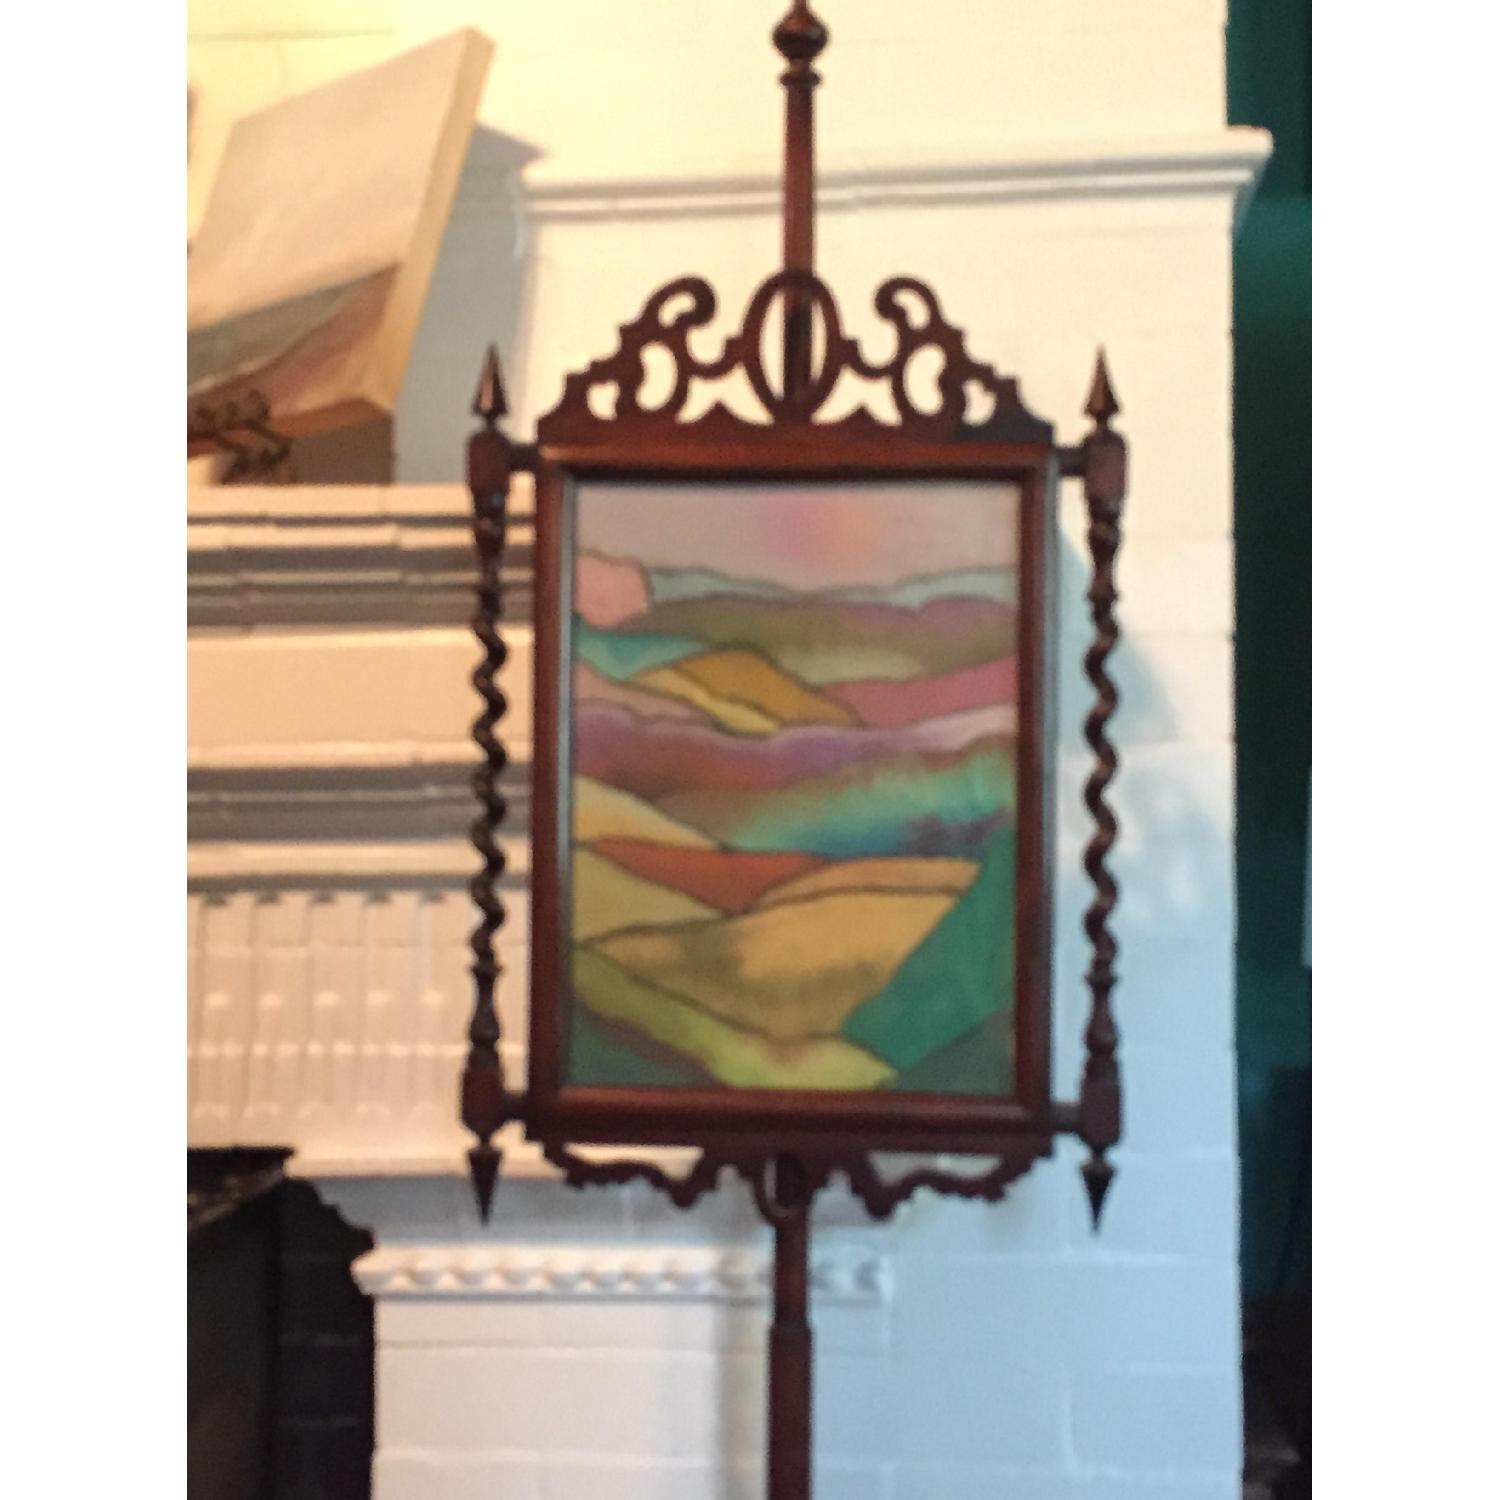 Victorian Free Standing Fireplace Screen Framed with Contemporary Pastel Drawing - image-3